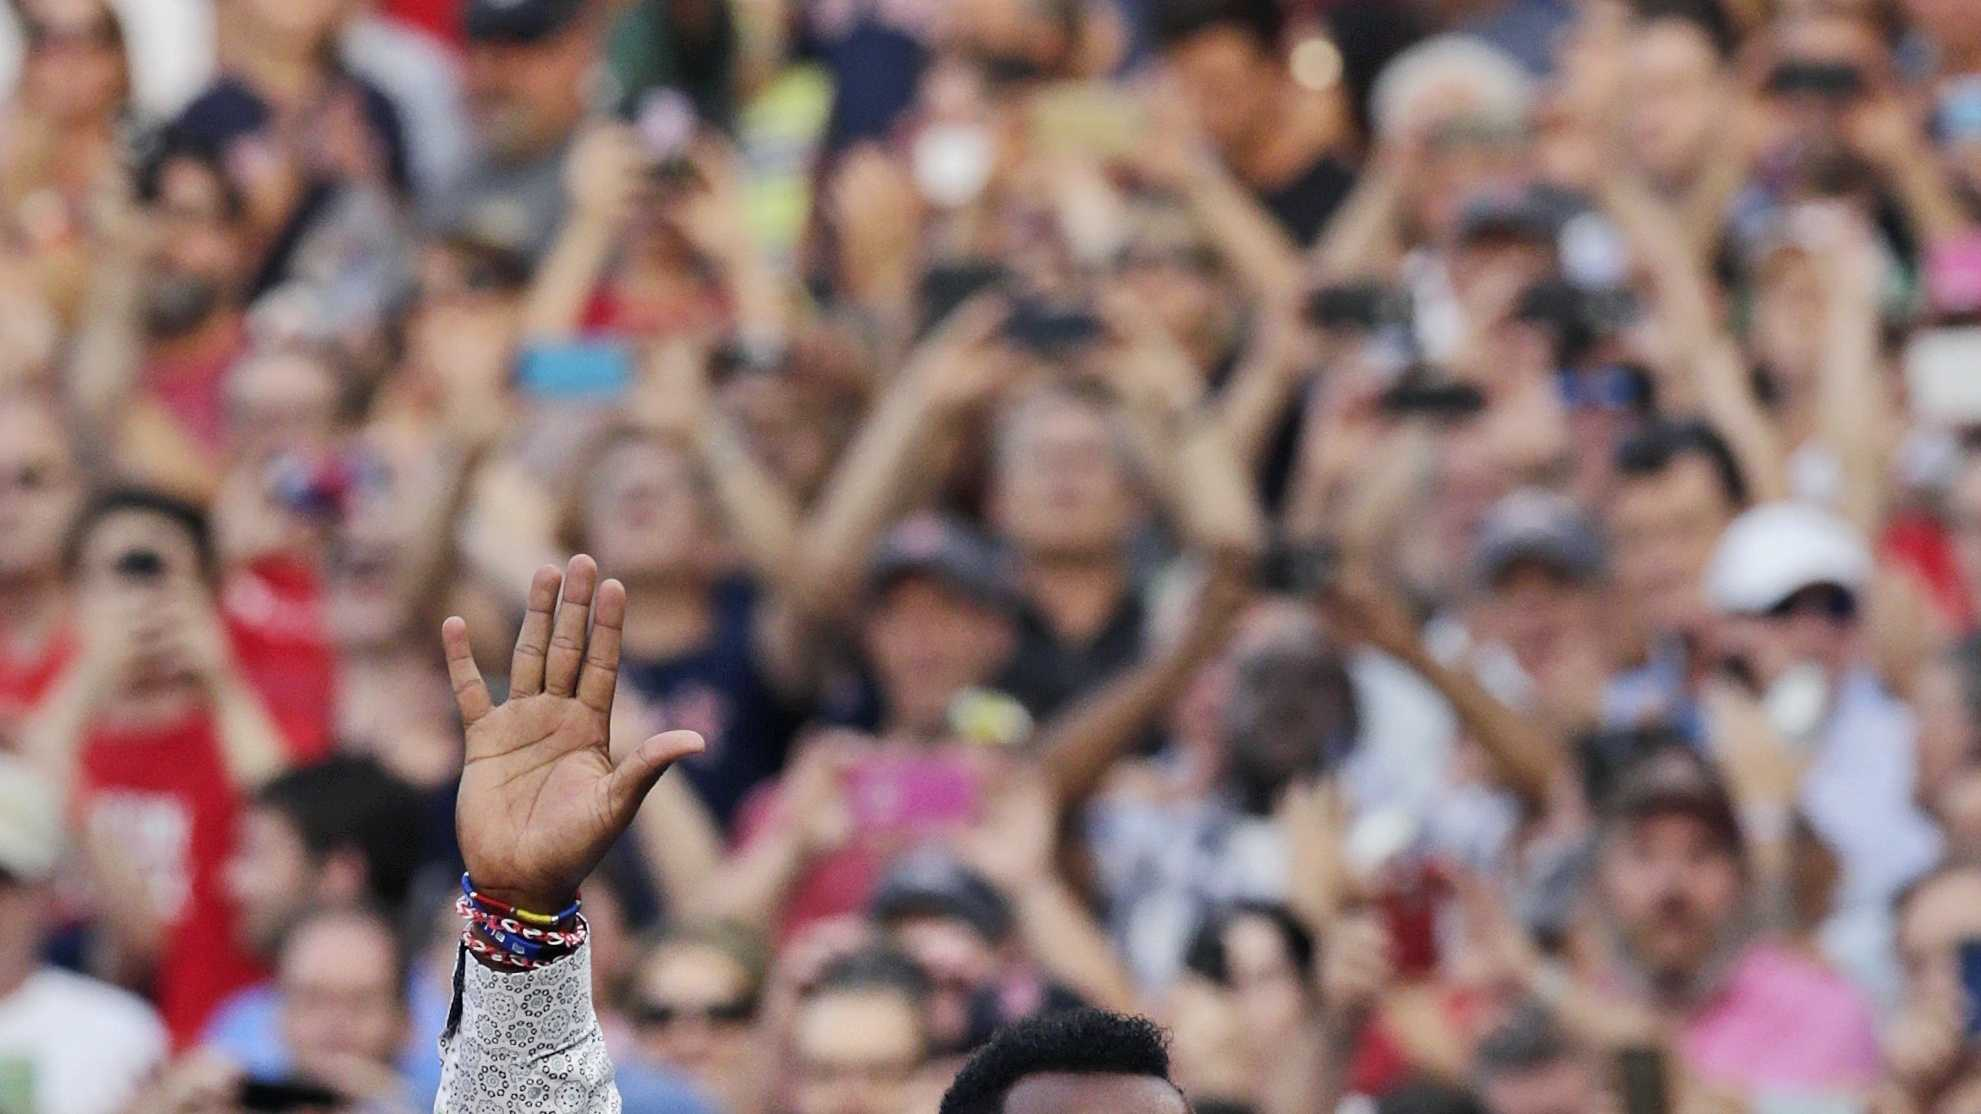 Baseball Hall of Fame member and former Boston Red Sox player Pedro Martinez acknowledges fans during a ceremony where his jersey was retired prior to a baseball game against the Chicago White Sox at Fenway Park in Boston, Tuesday, July 28, 2015. (AP Photo/Charles Krupa)